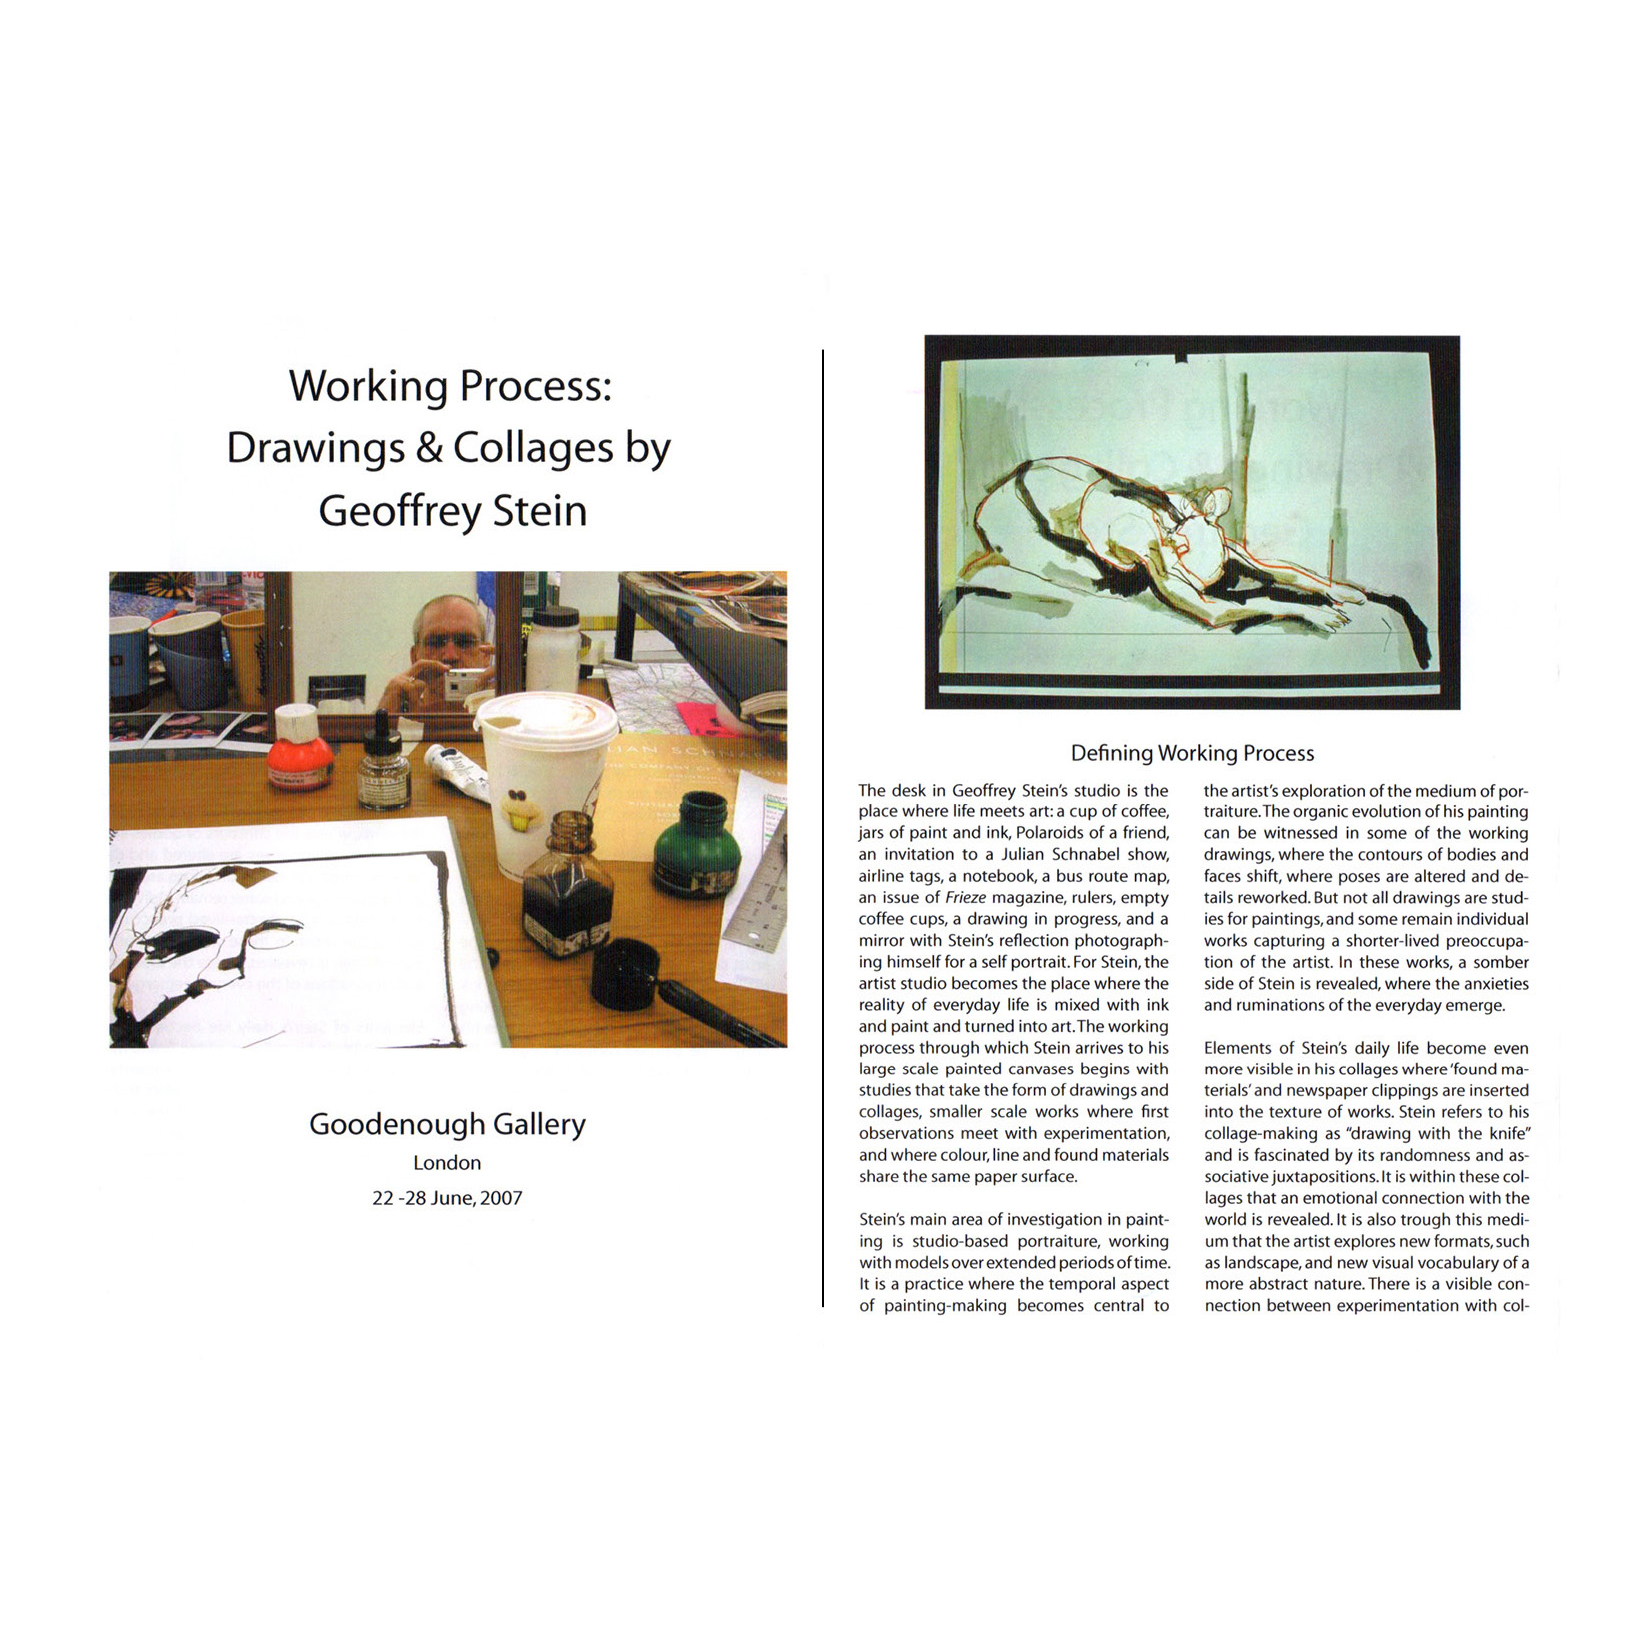 Working Process: Drawings and Collages by Geoffrey SteinBy Adelina VlasJune, 2007 -